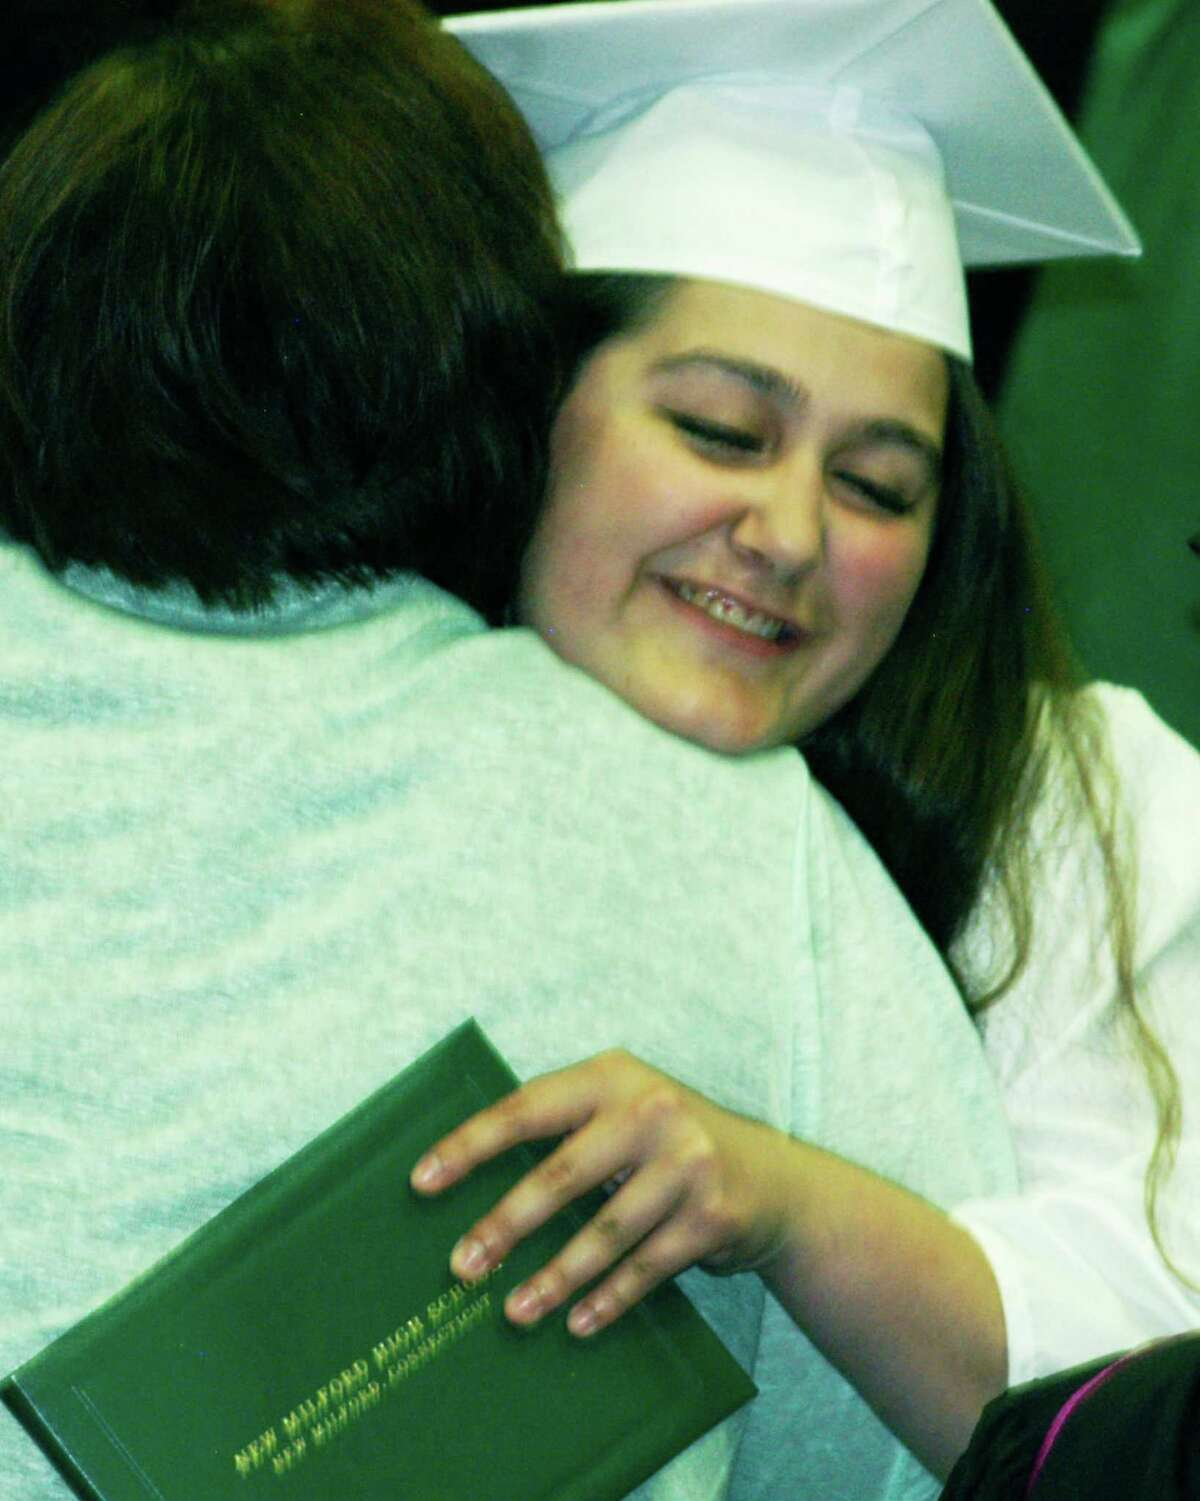 Amber Levine shares an emotional enmbrace Saturday with Class of 2015 advisor Daisy Norlander moments after receiving her diploma during the New Milford High School commencement ceremony at the O'Neill Center on the campus of Western Connecticut State University in Danbury. June 20, 2015